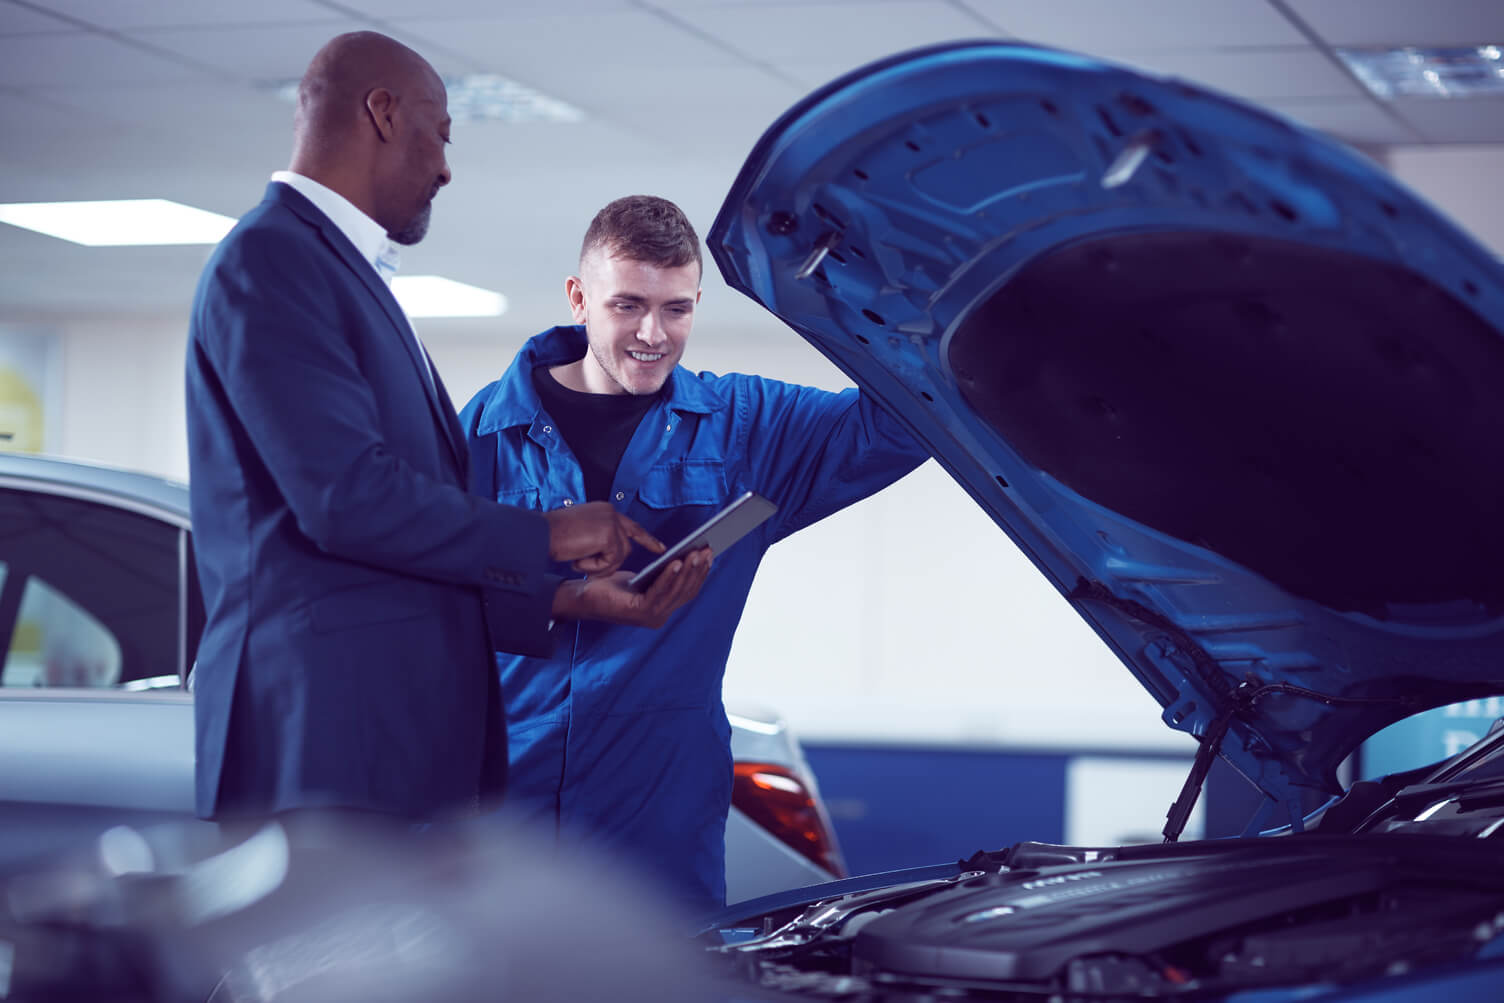 Two men looking under the hood of a car